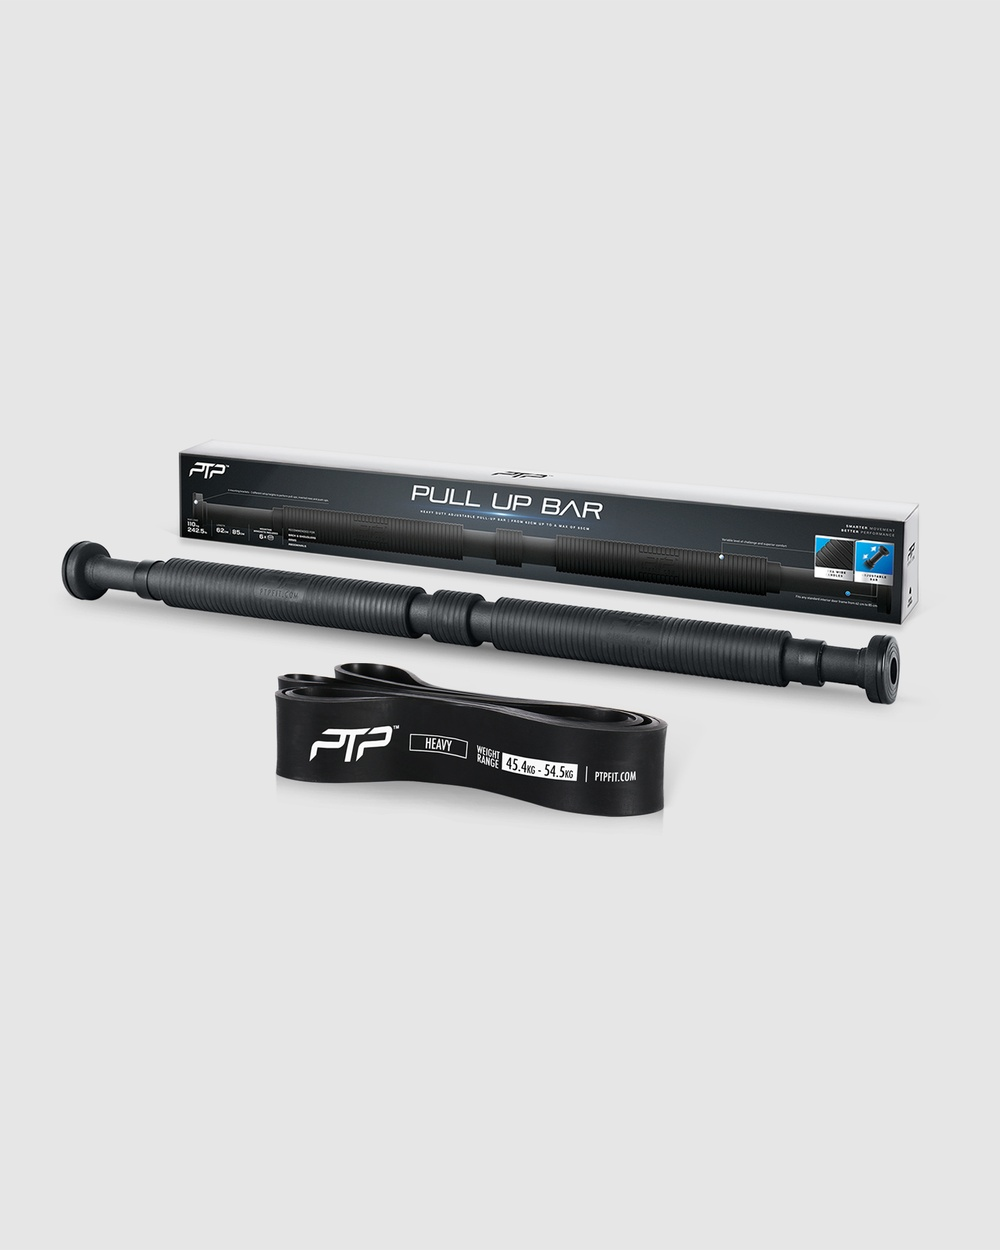 PTP Pull Up Bar+SuperBand4 Novelty Gifts Black Pull-Up